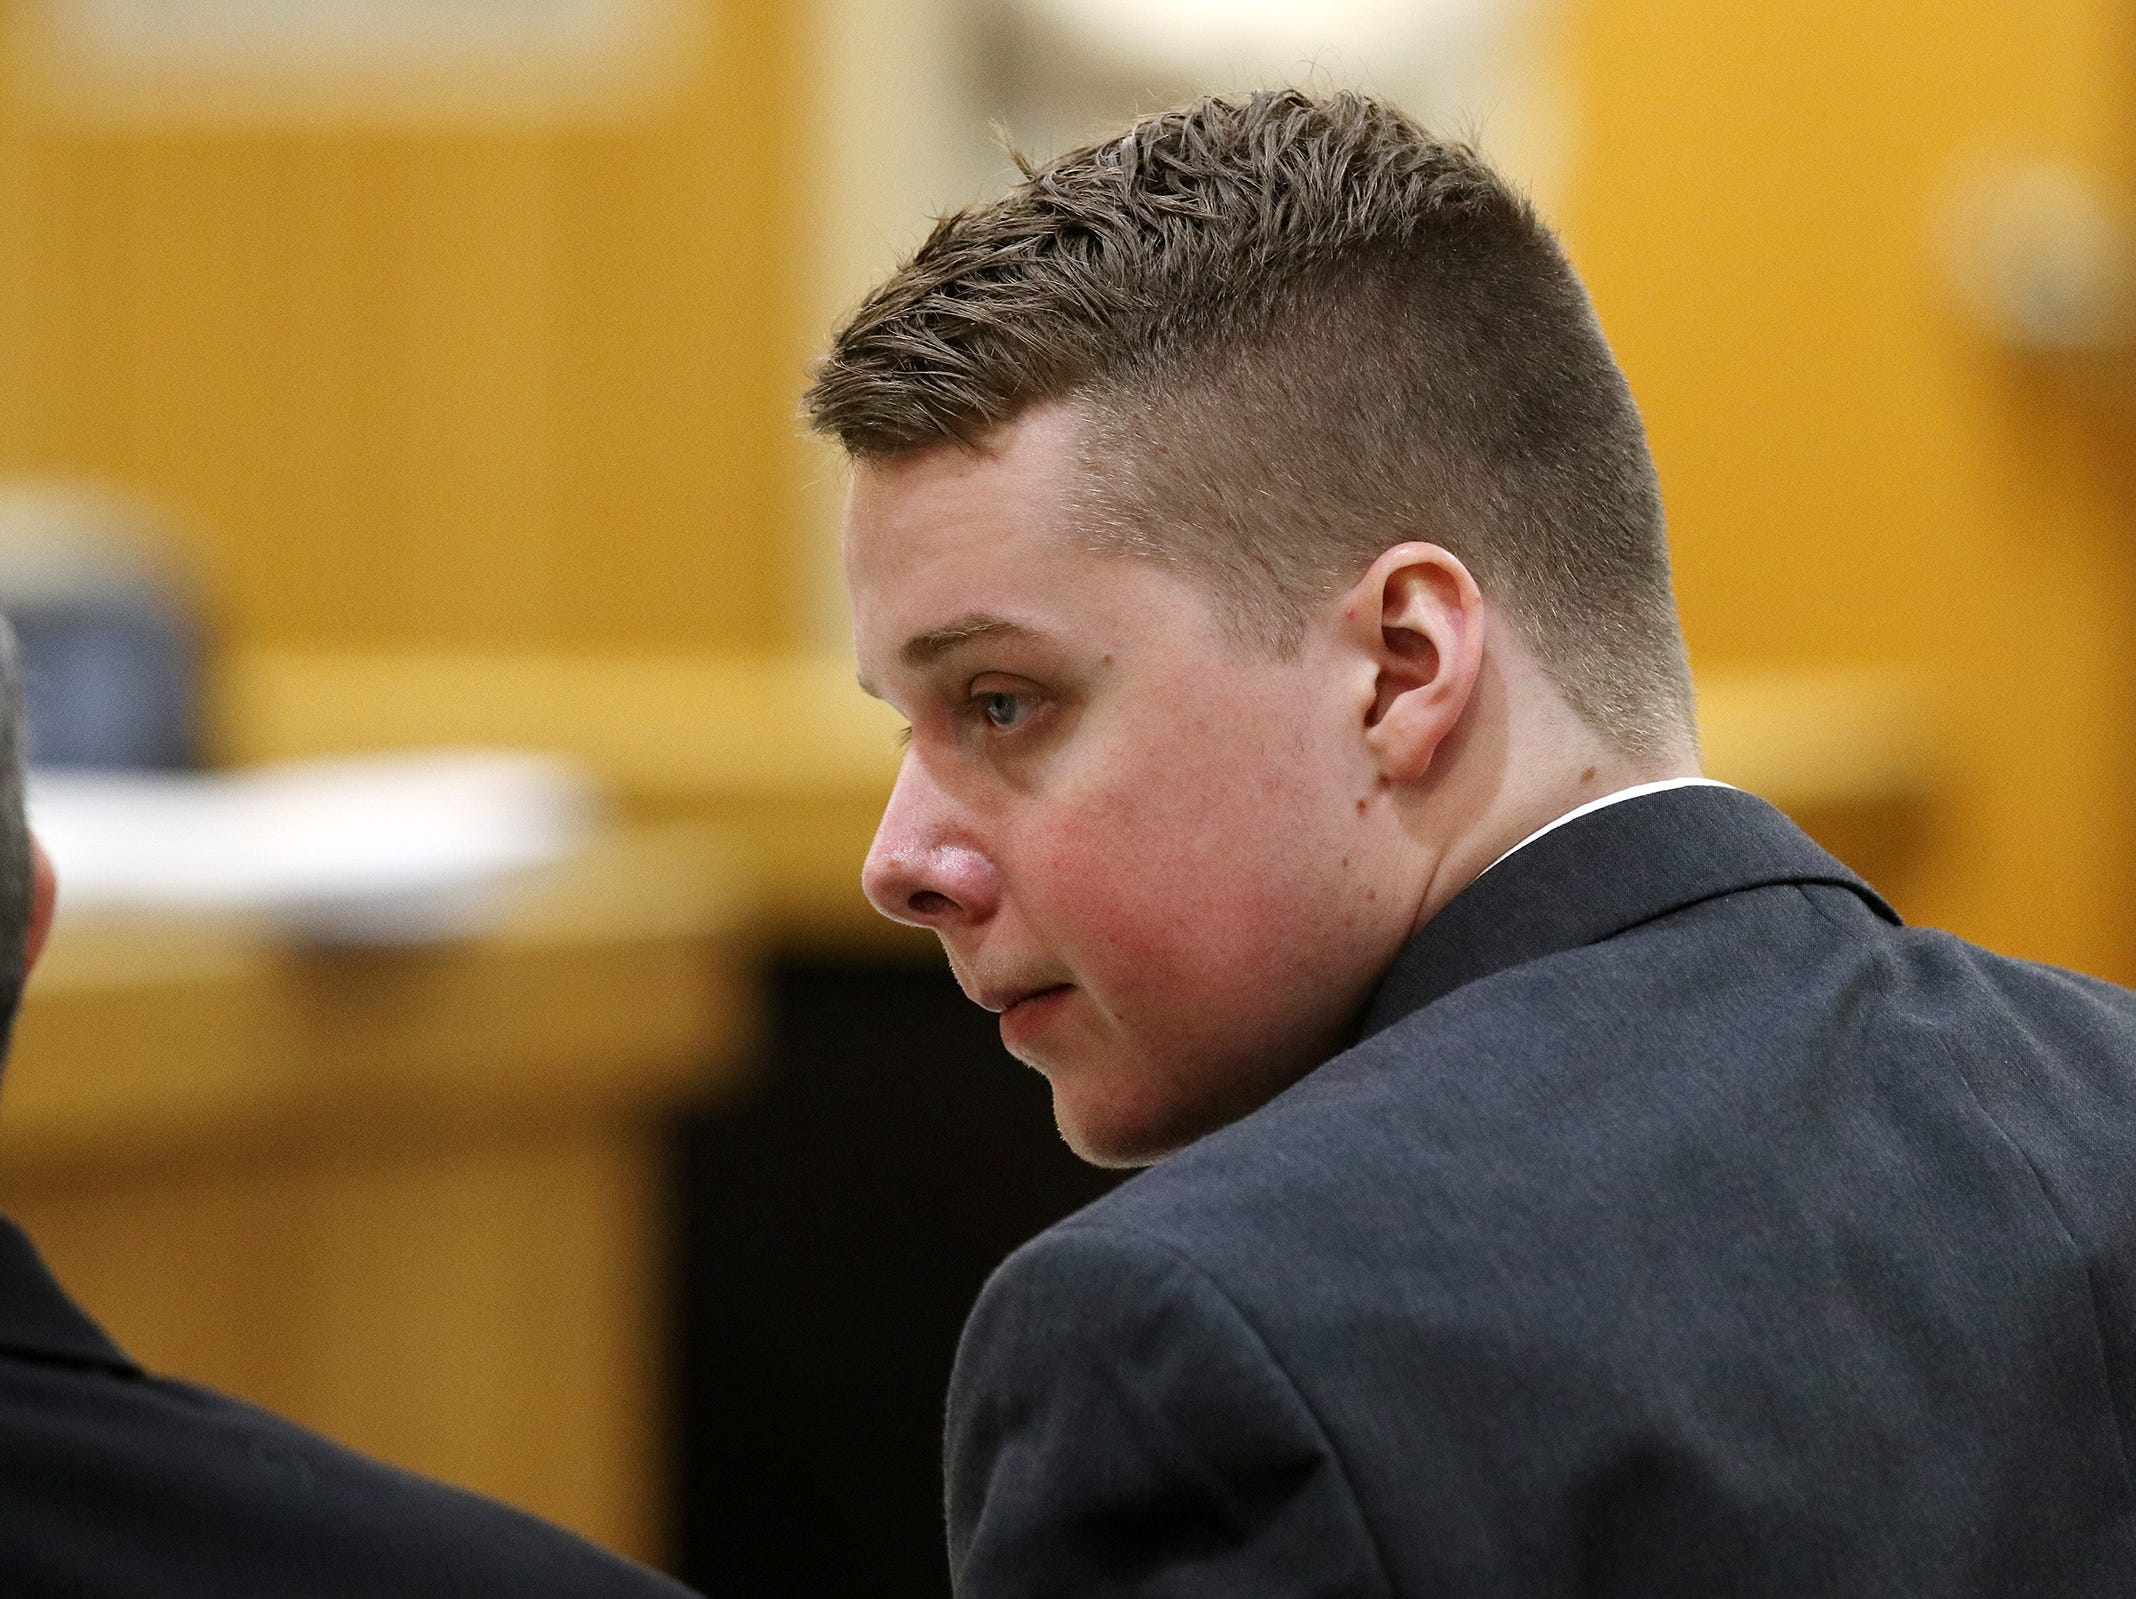 Liam McAtasney, who is charged with the murder of former high school classmate, Sarah Stern, speaks to his lawyer, Carlos Diaz-Cobo, during his trial before Superior Court Judge Richard W. English at the Monmouth County Courthouse in Freehold, NJ Wednesday January 30, 2019.